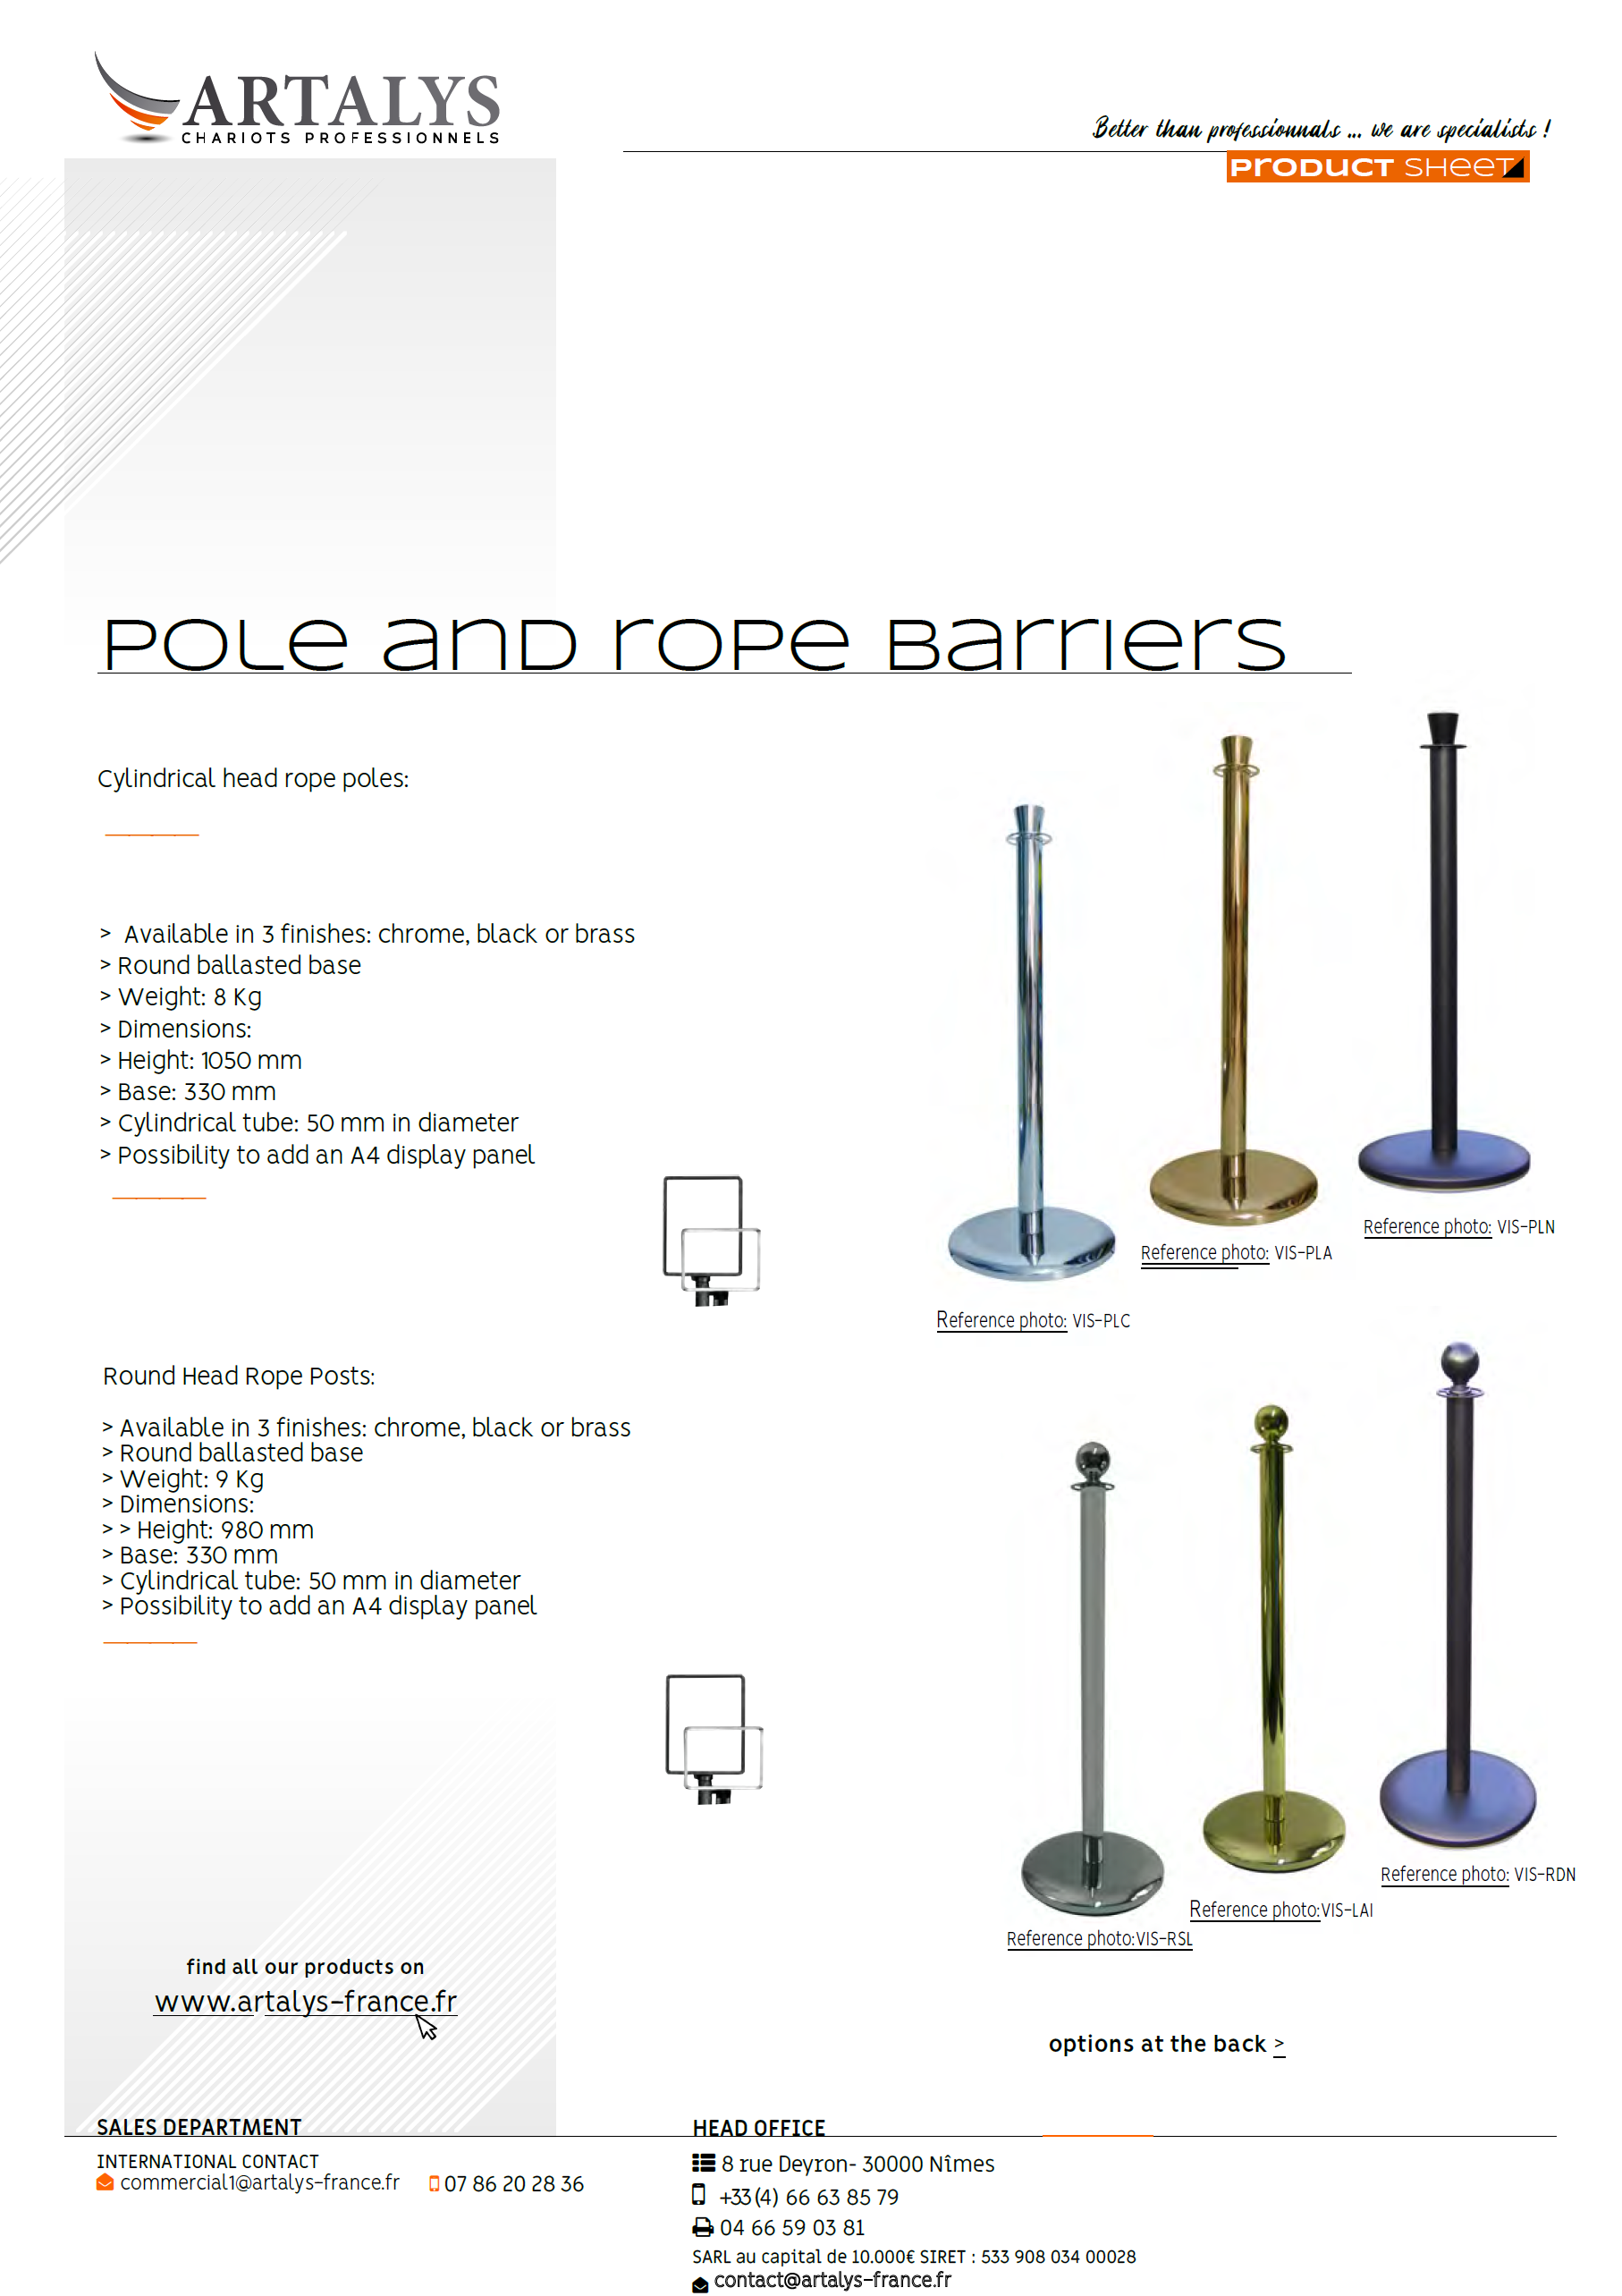 Product sheet of our pole and rope barriers